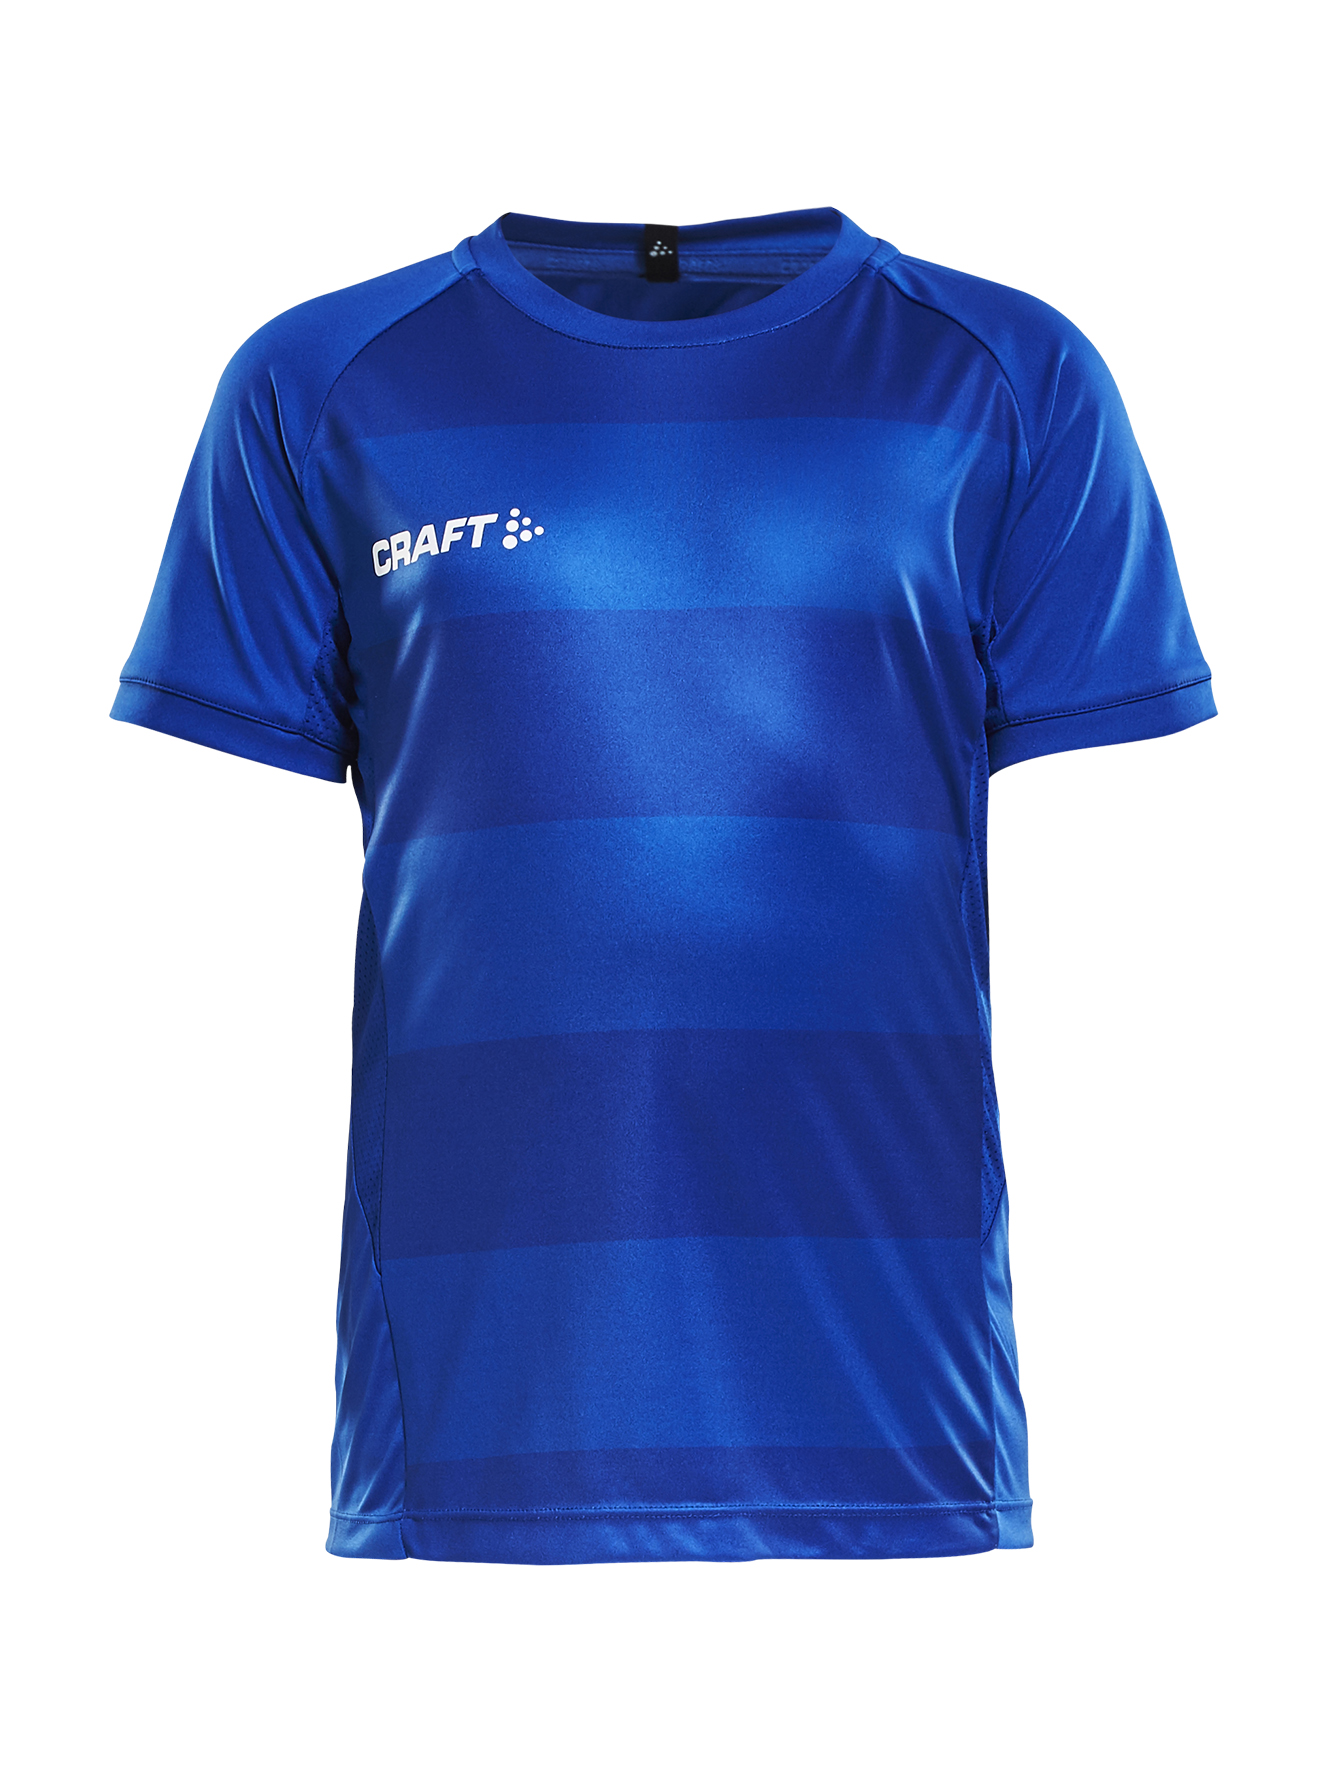 Craft PROGRESS Jersey Graphic JR ROYAL BLUE (TONE IN TONE)